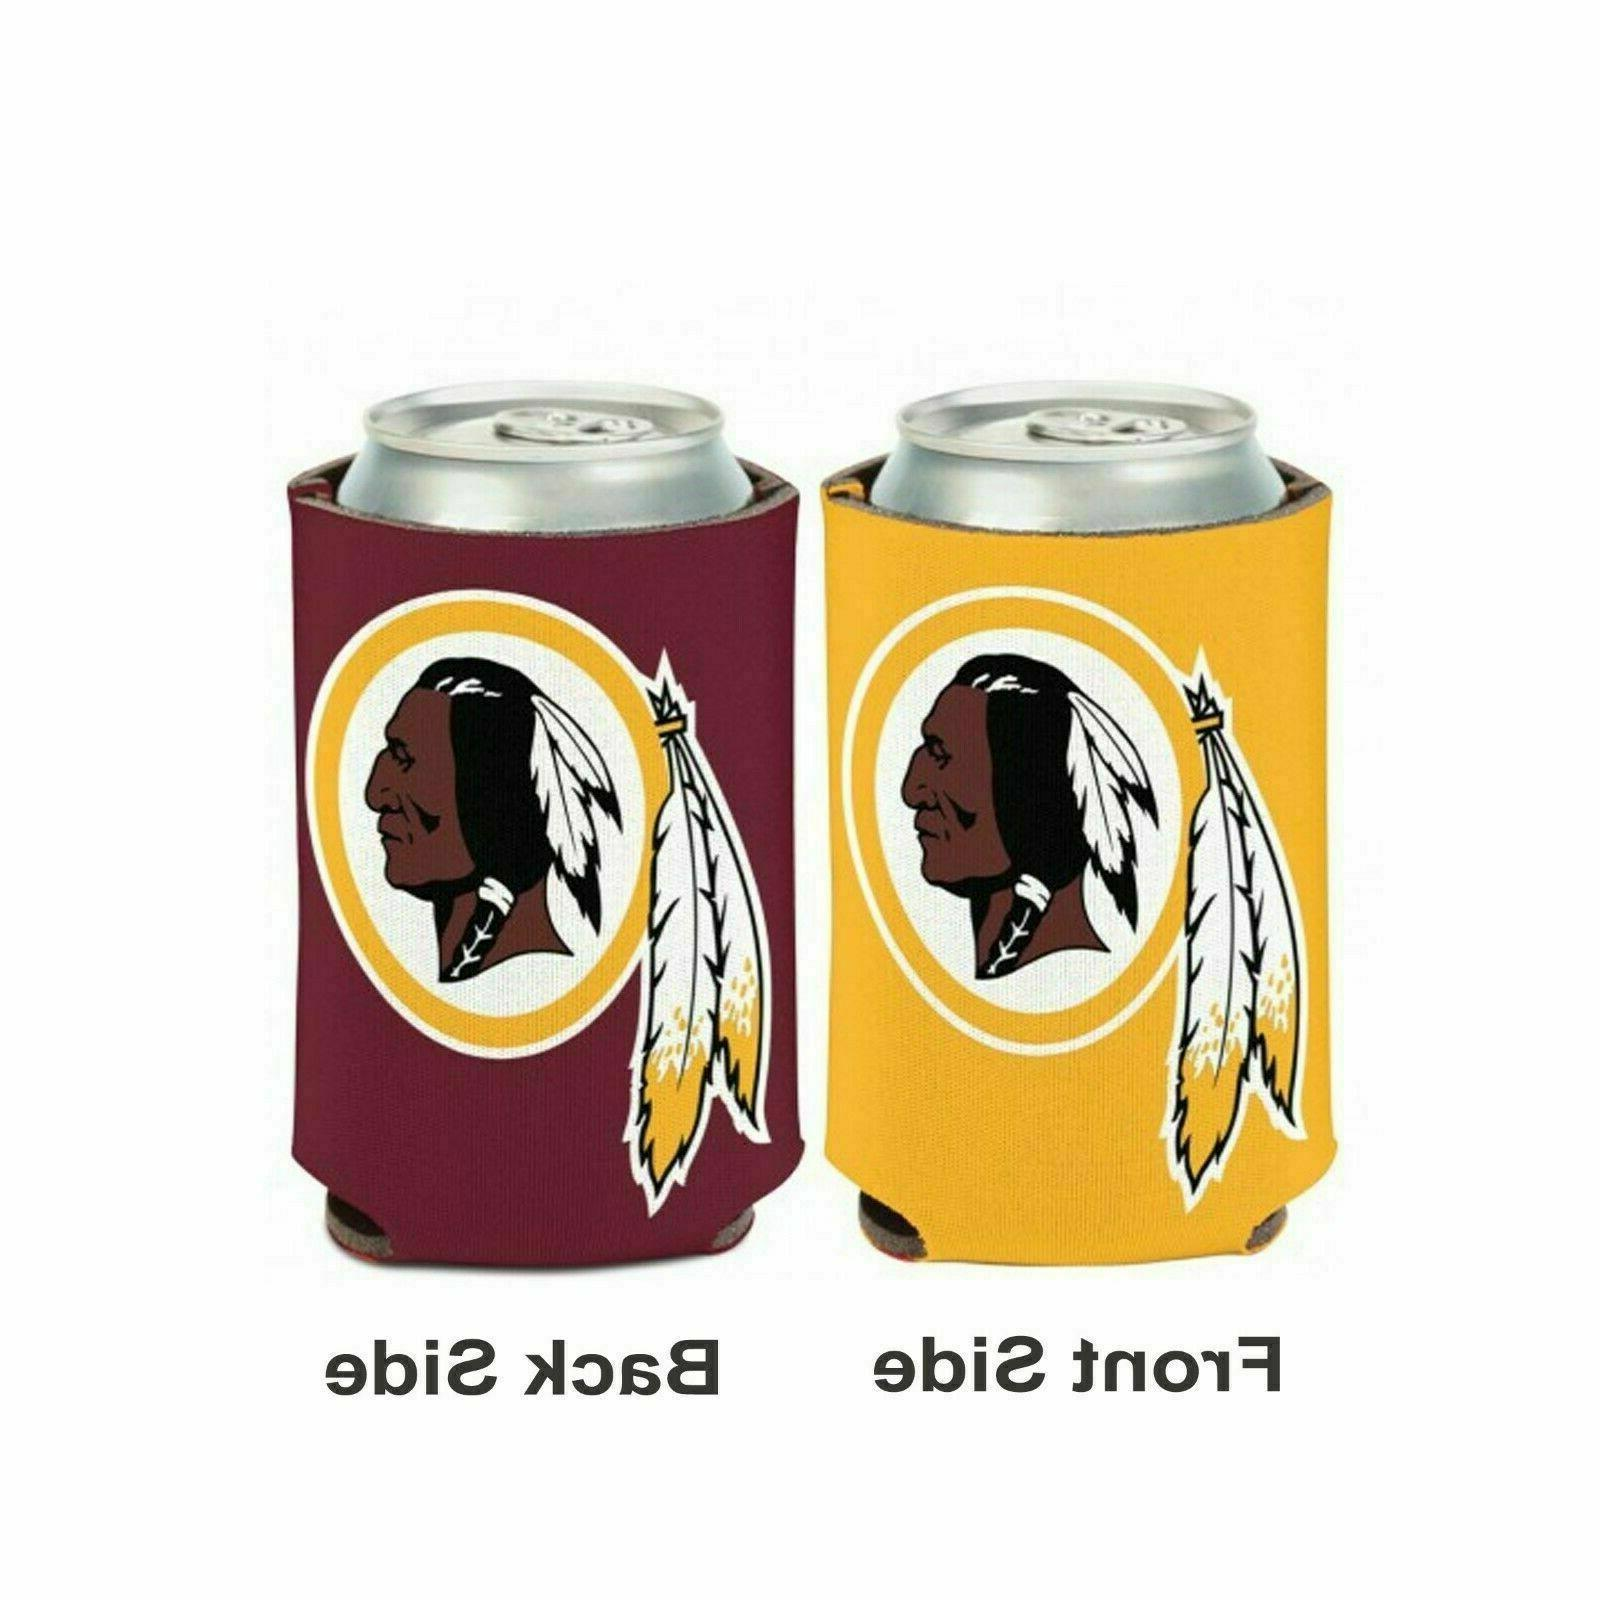 new washington redskins football league licensed can